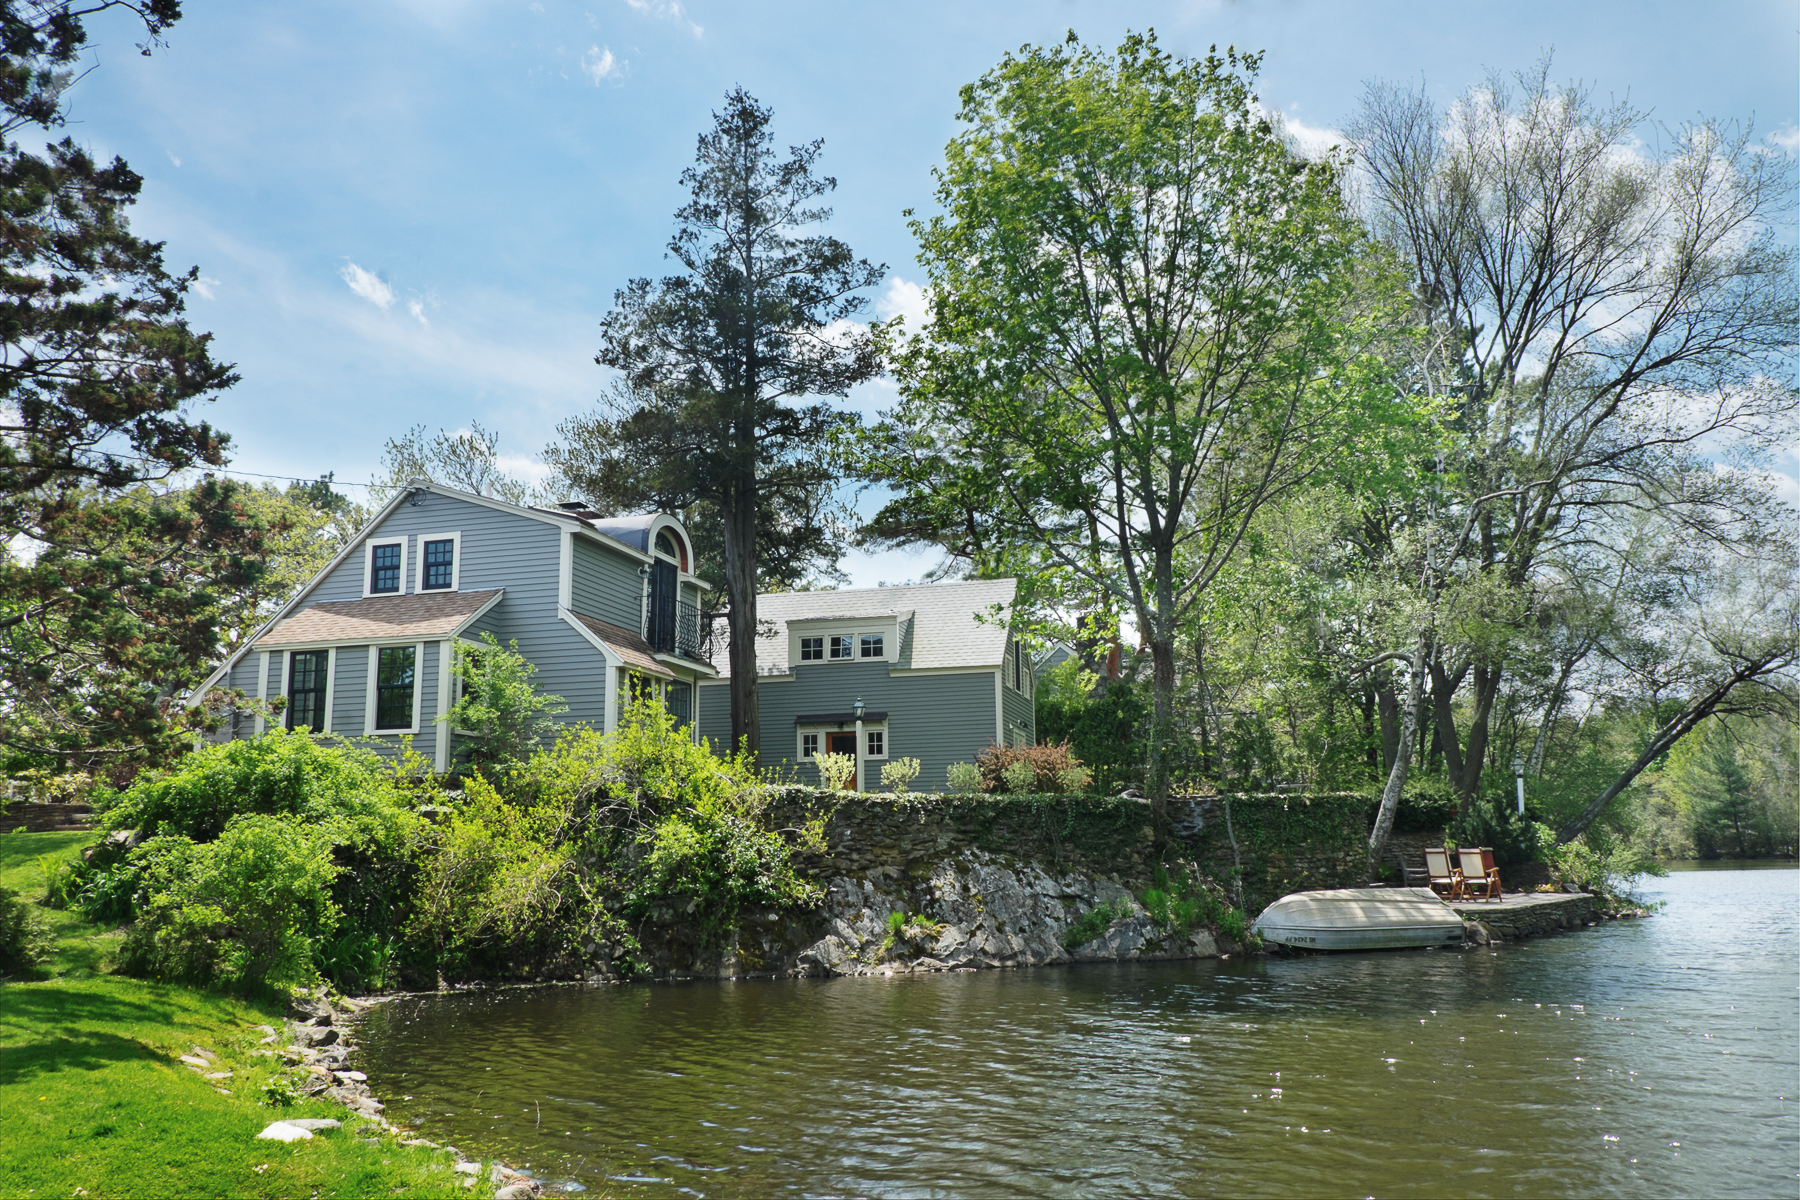 Single Family Home for Sale at Idyllic Retreat on the Pond 27 Gingerbread Hill Marblehead, Massachusetts 01945 United States